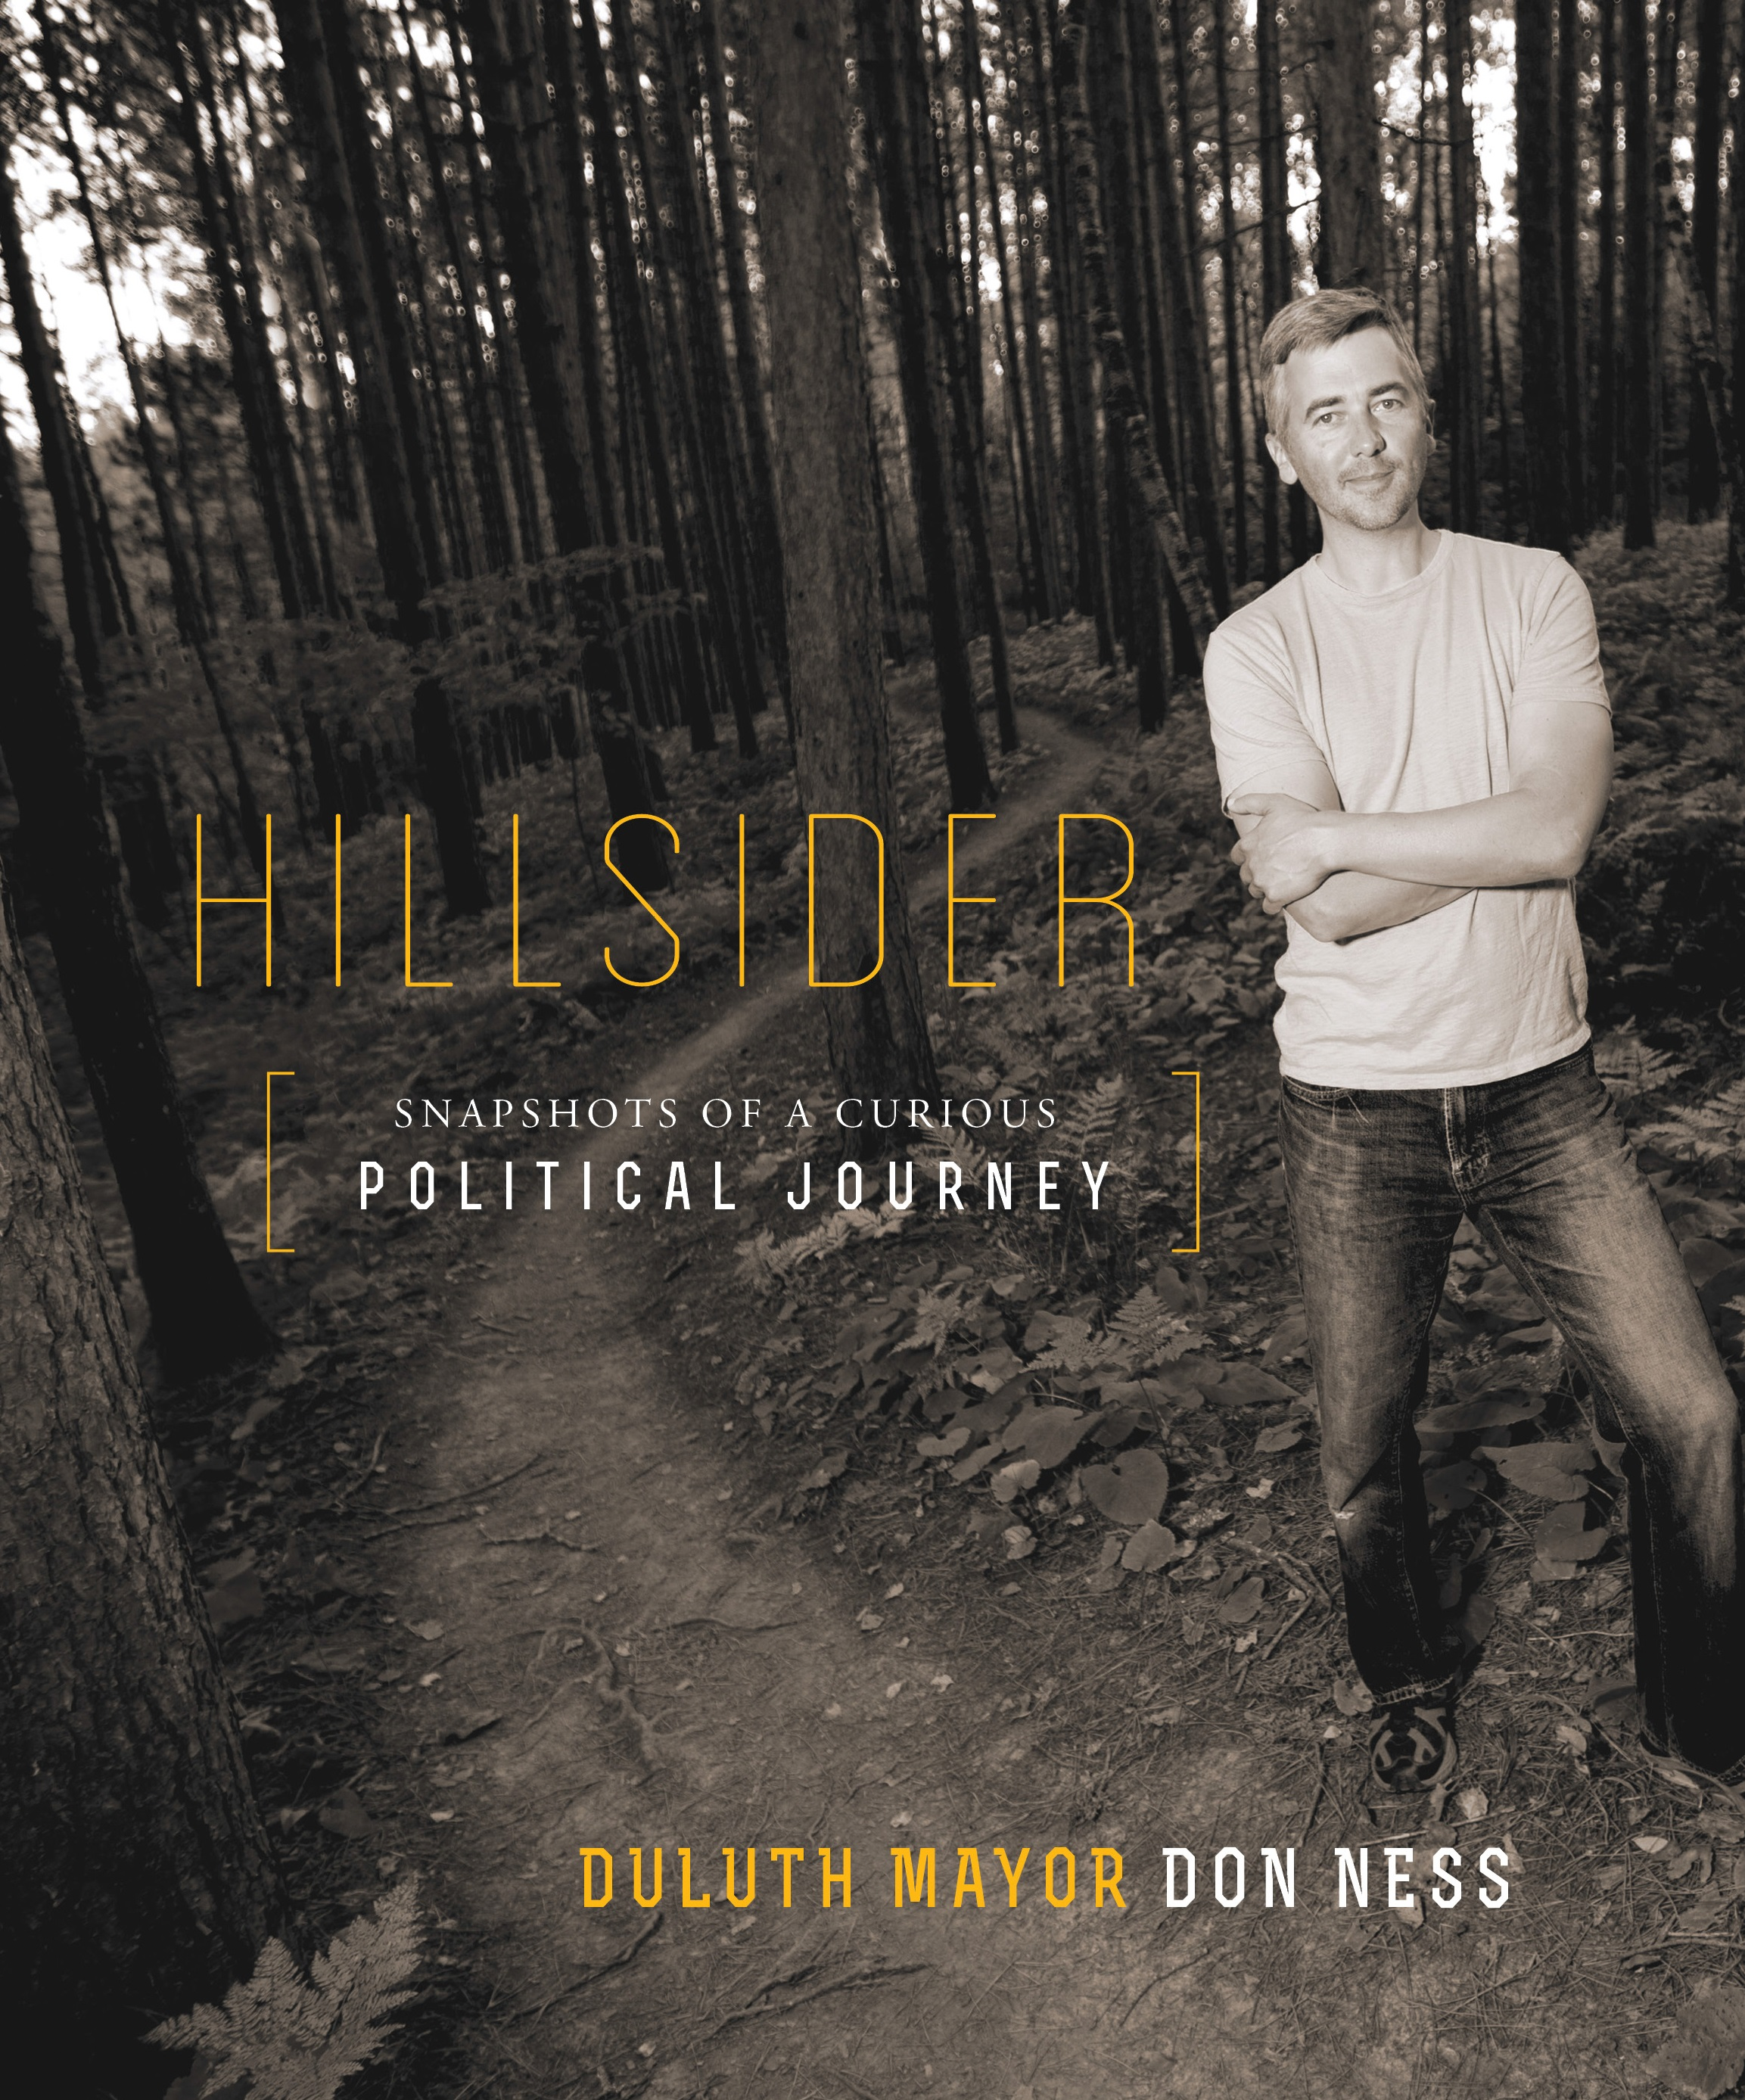 """""""Hillsider: Snapshots of a Curious Political Journey"""" by Don Ness"""